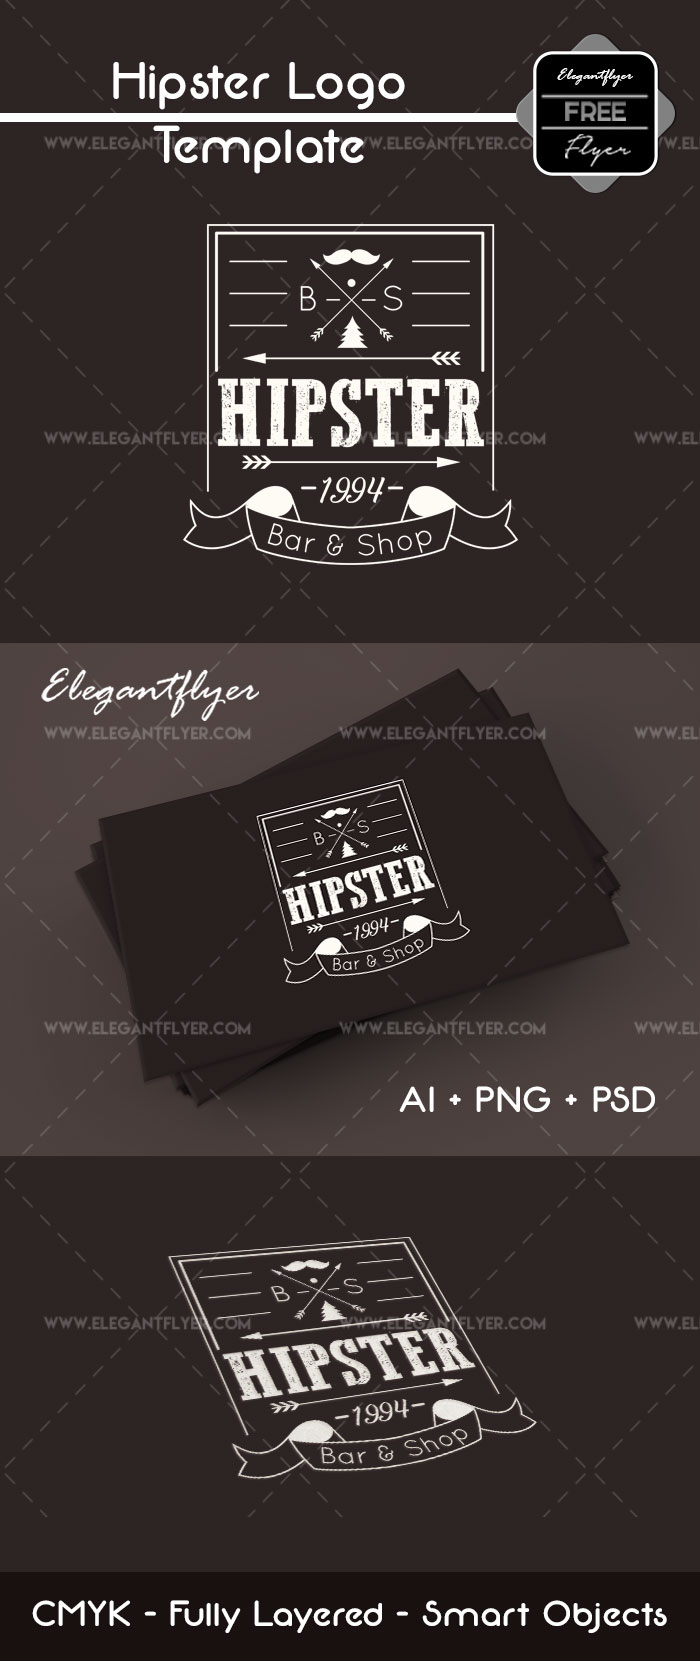 Hipster – Free Logo Template